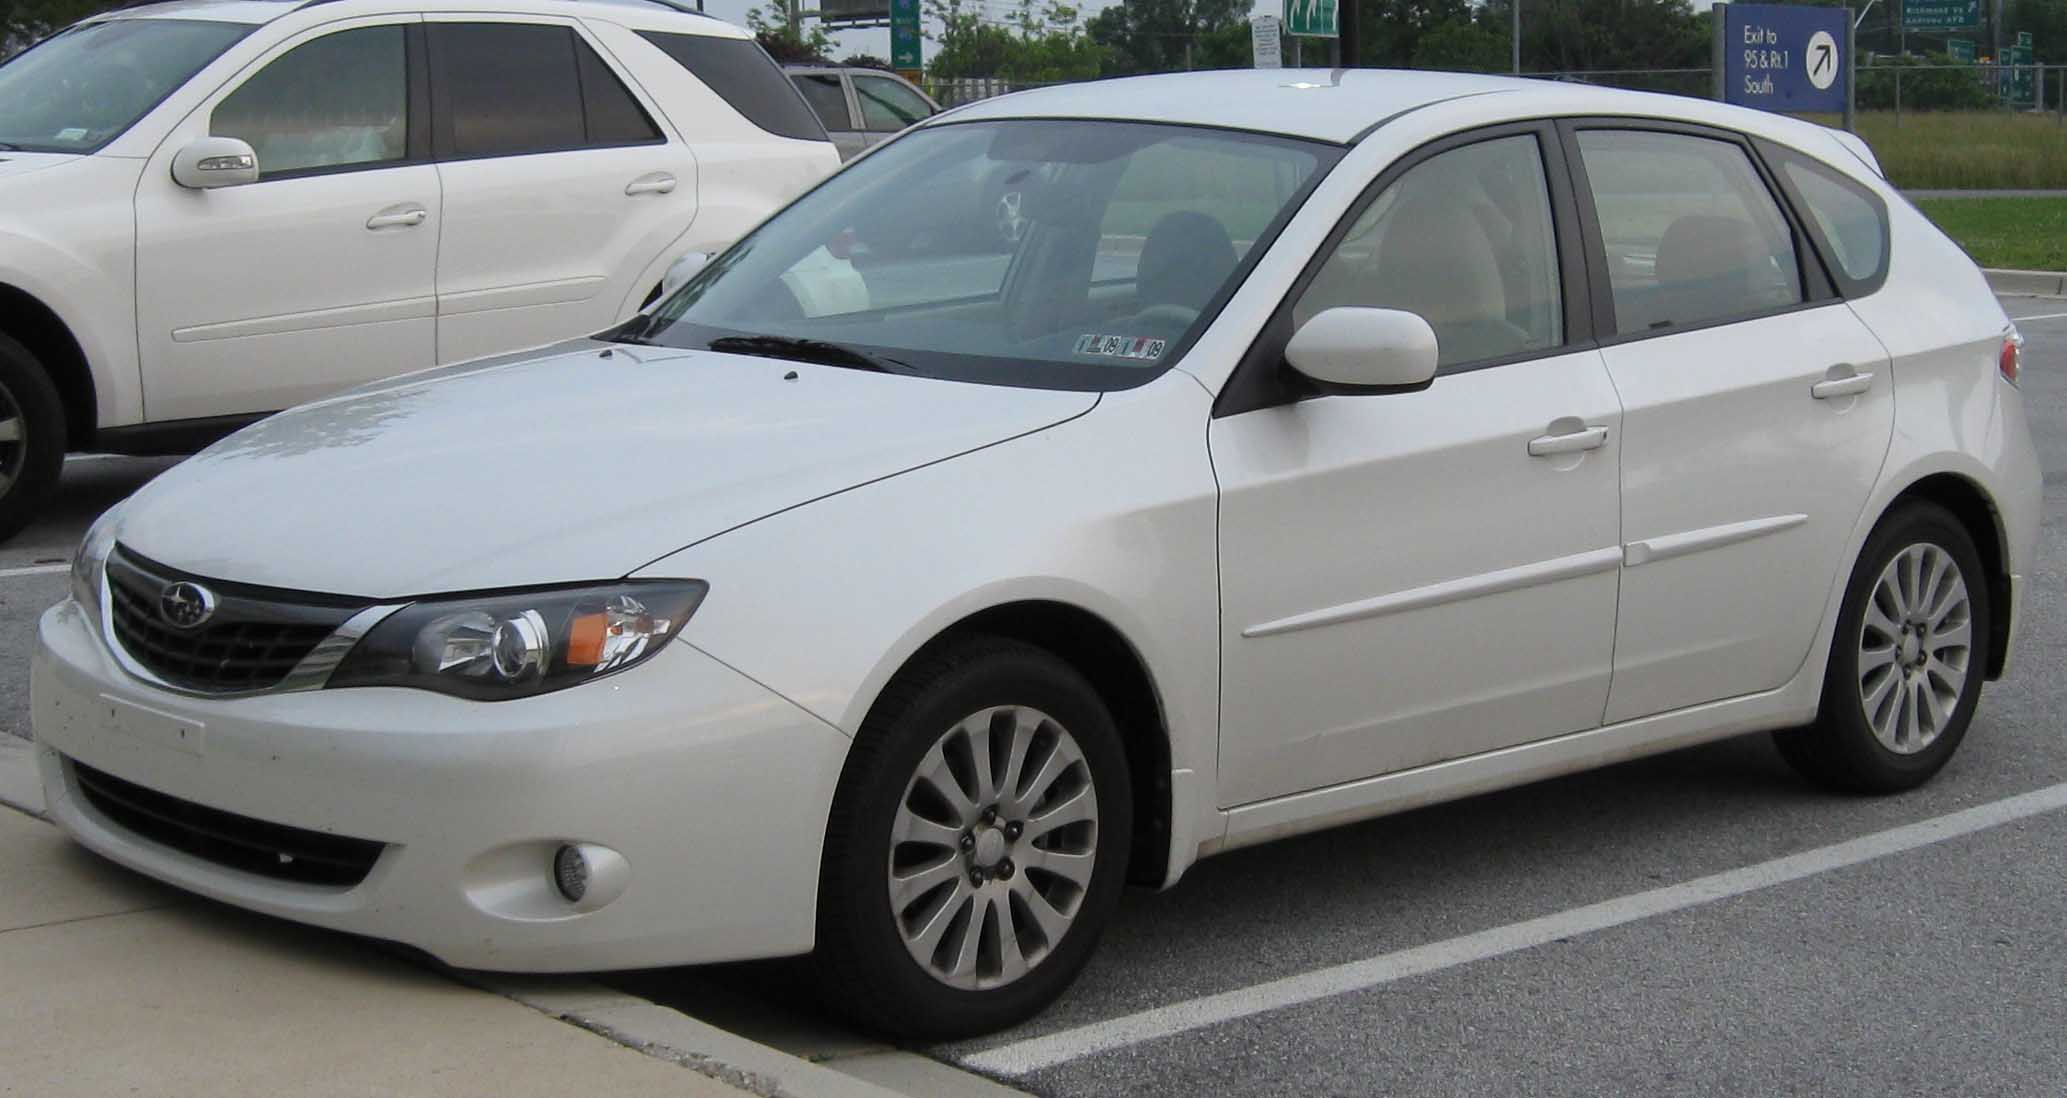 file:2008 subaru impreza 2.5i hatch front 1 - wikimedia commons